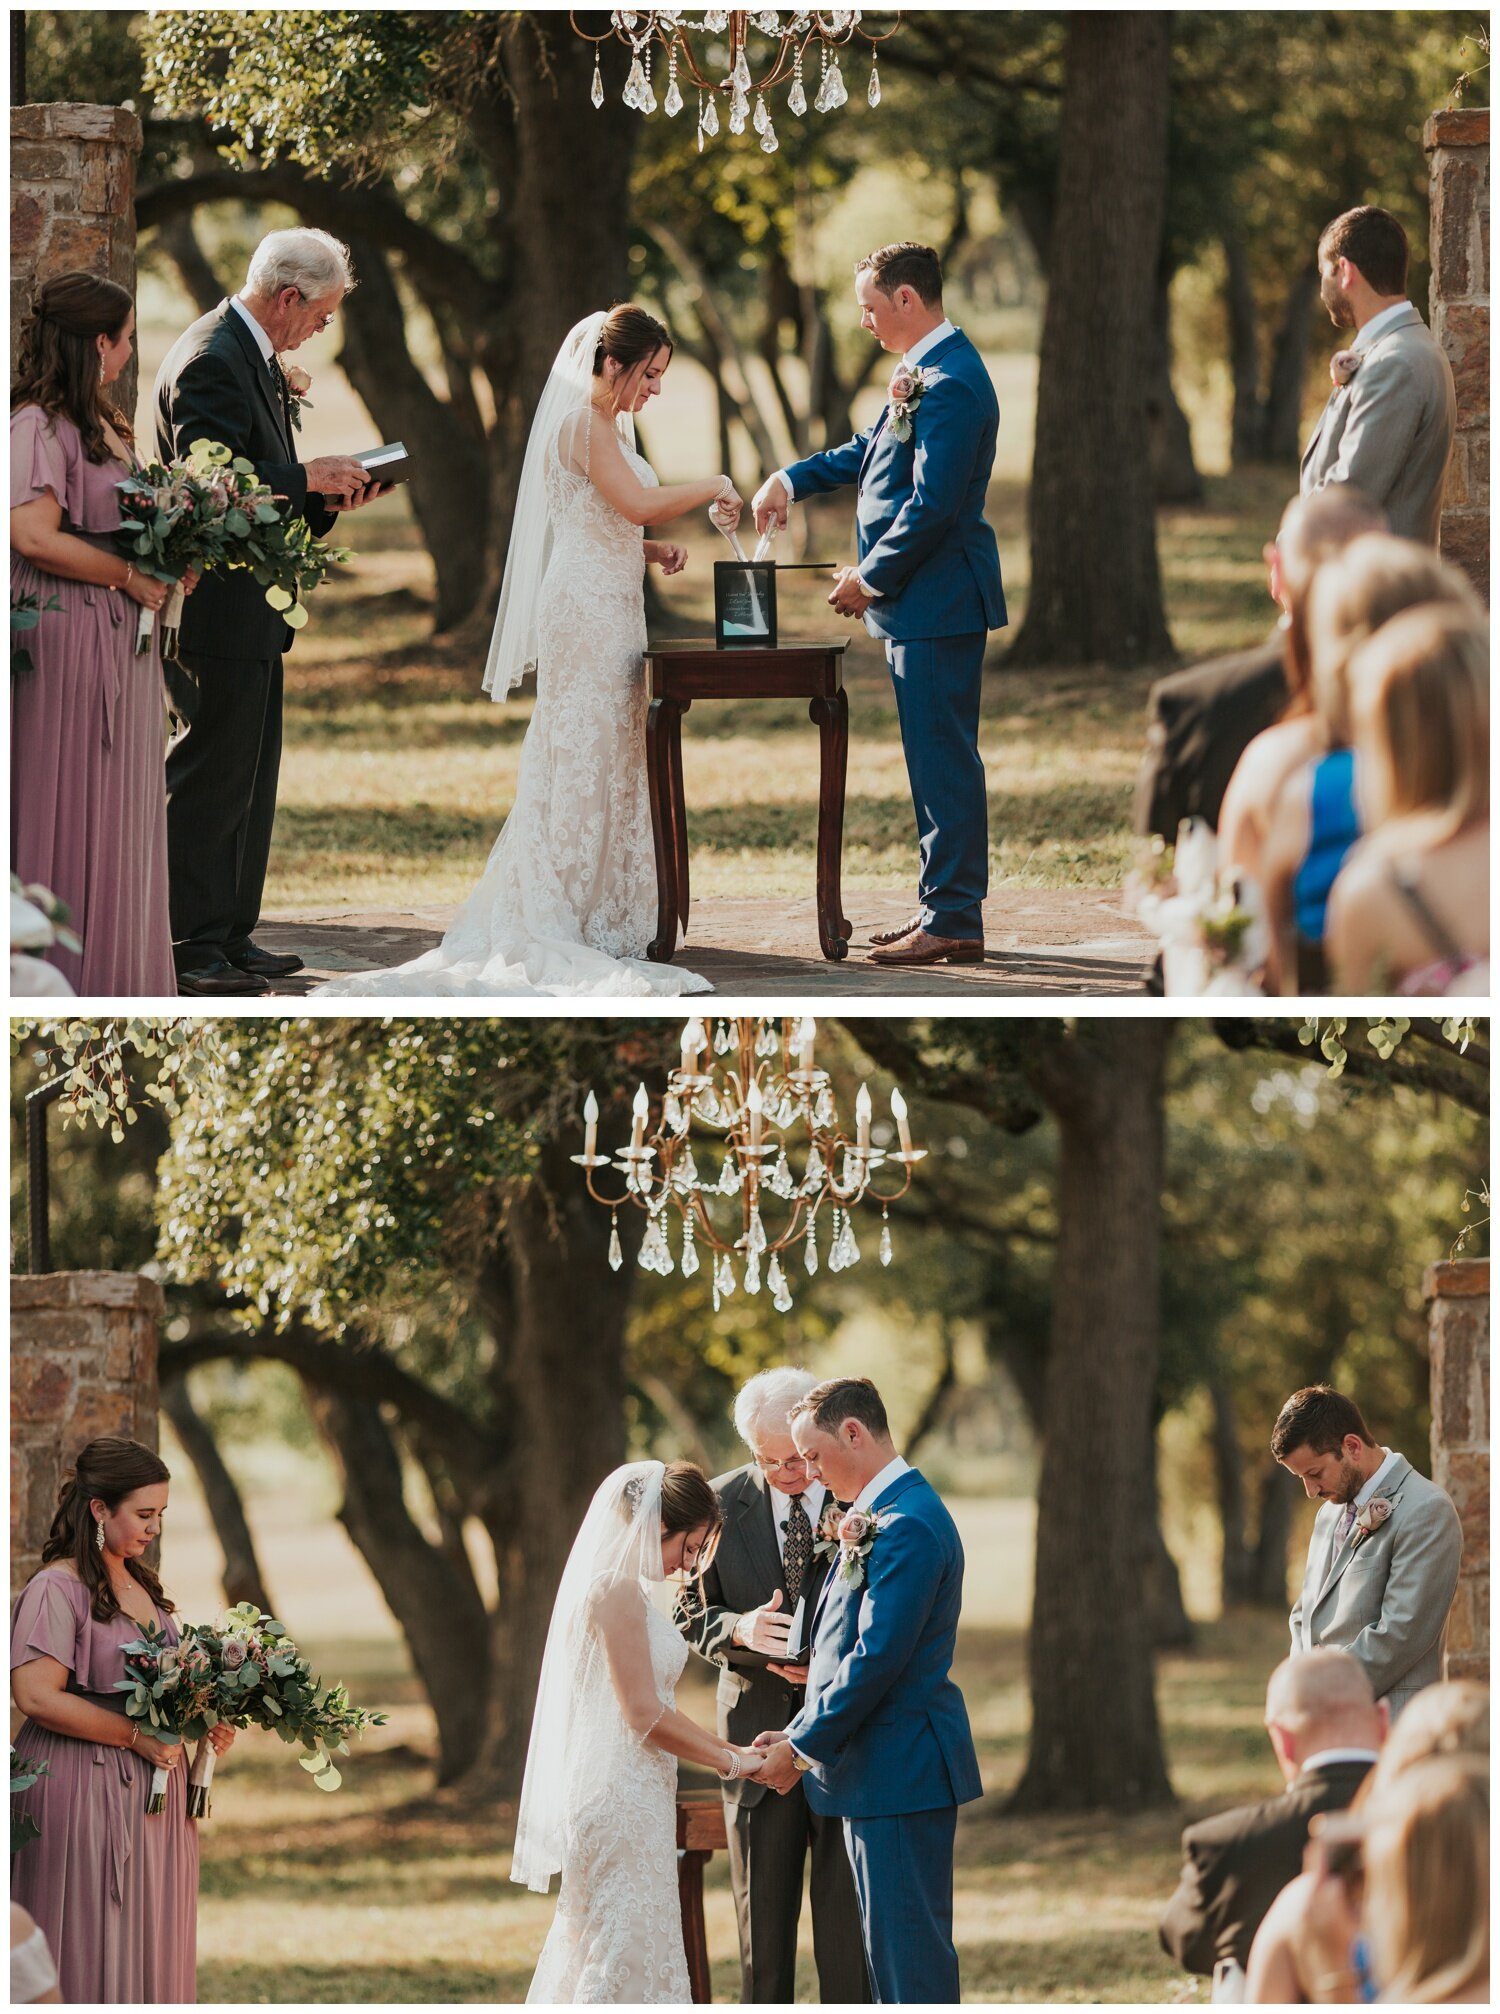 Modern Wedding at Ma Maison in Dripping Springs, Austin, Texas (Joshua and Parisa – Austin Wedding Photographer)_0043.jpg